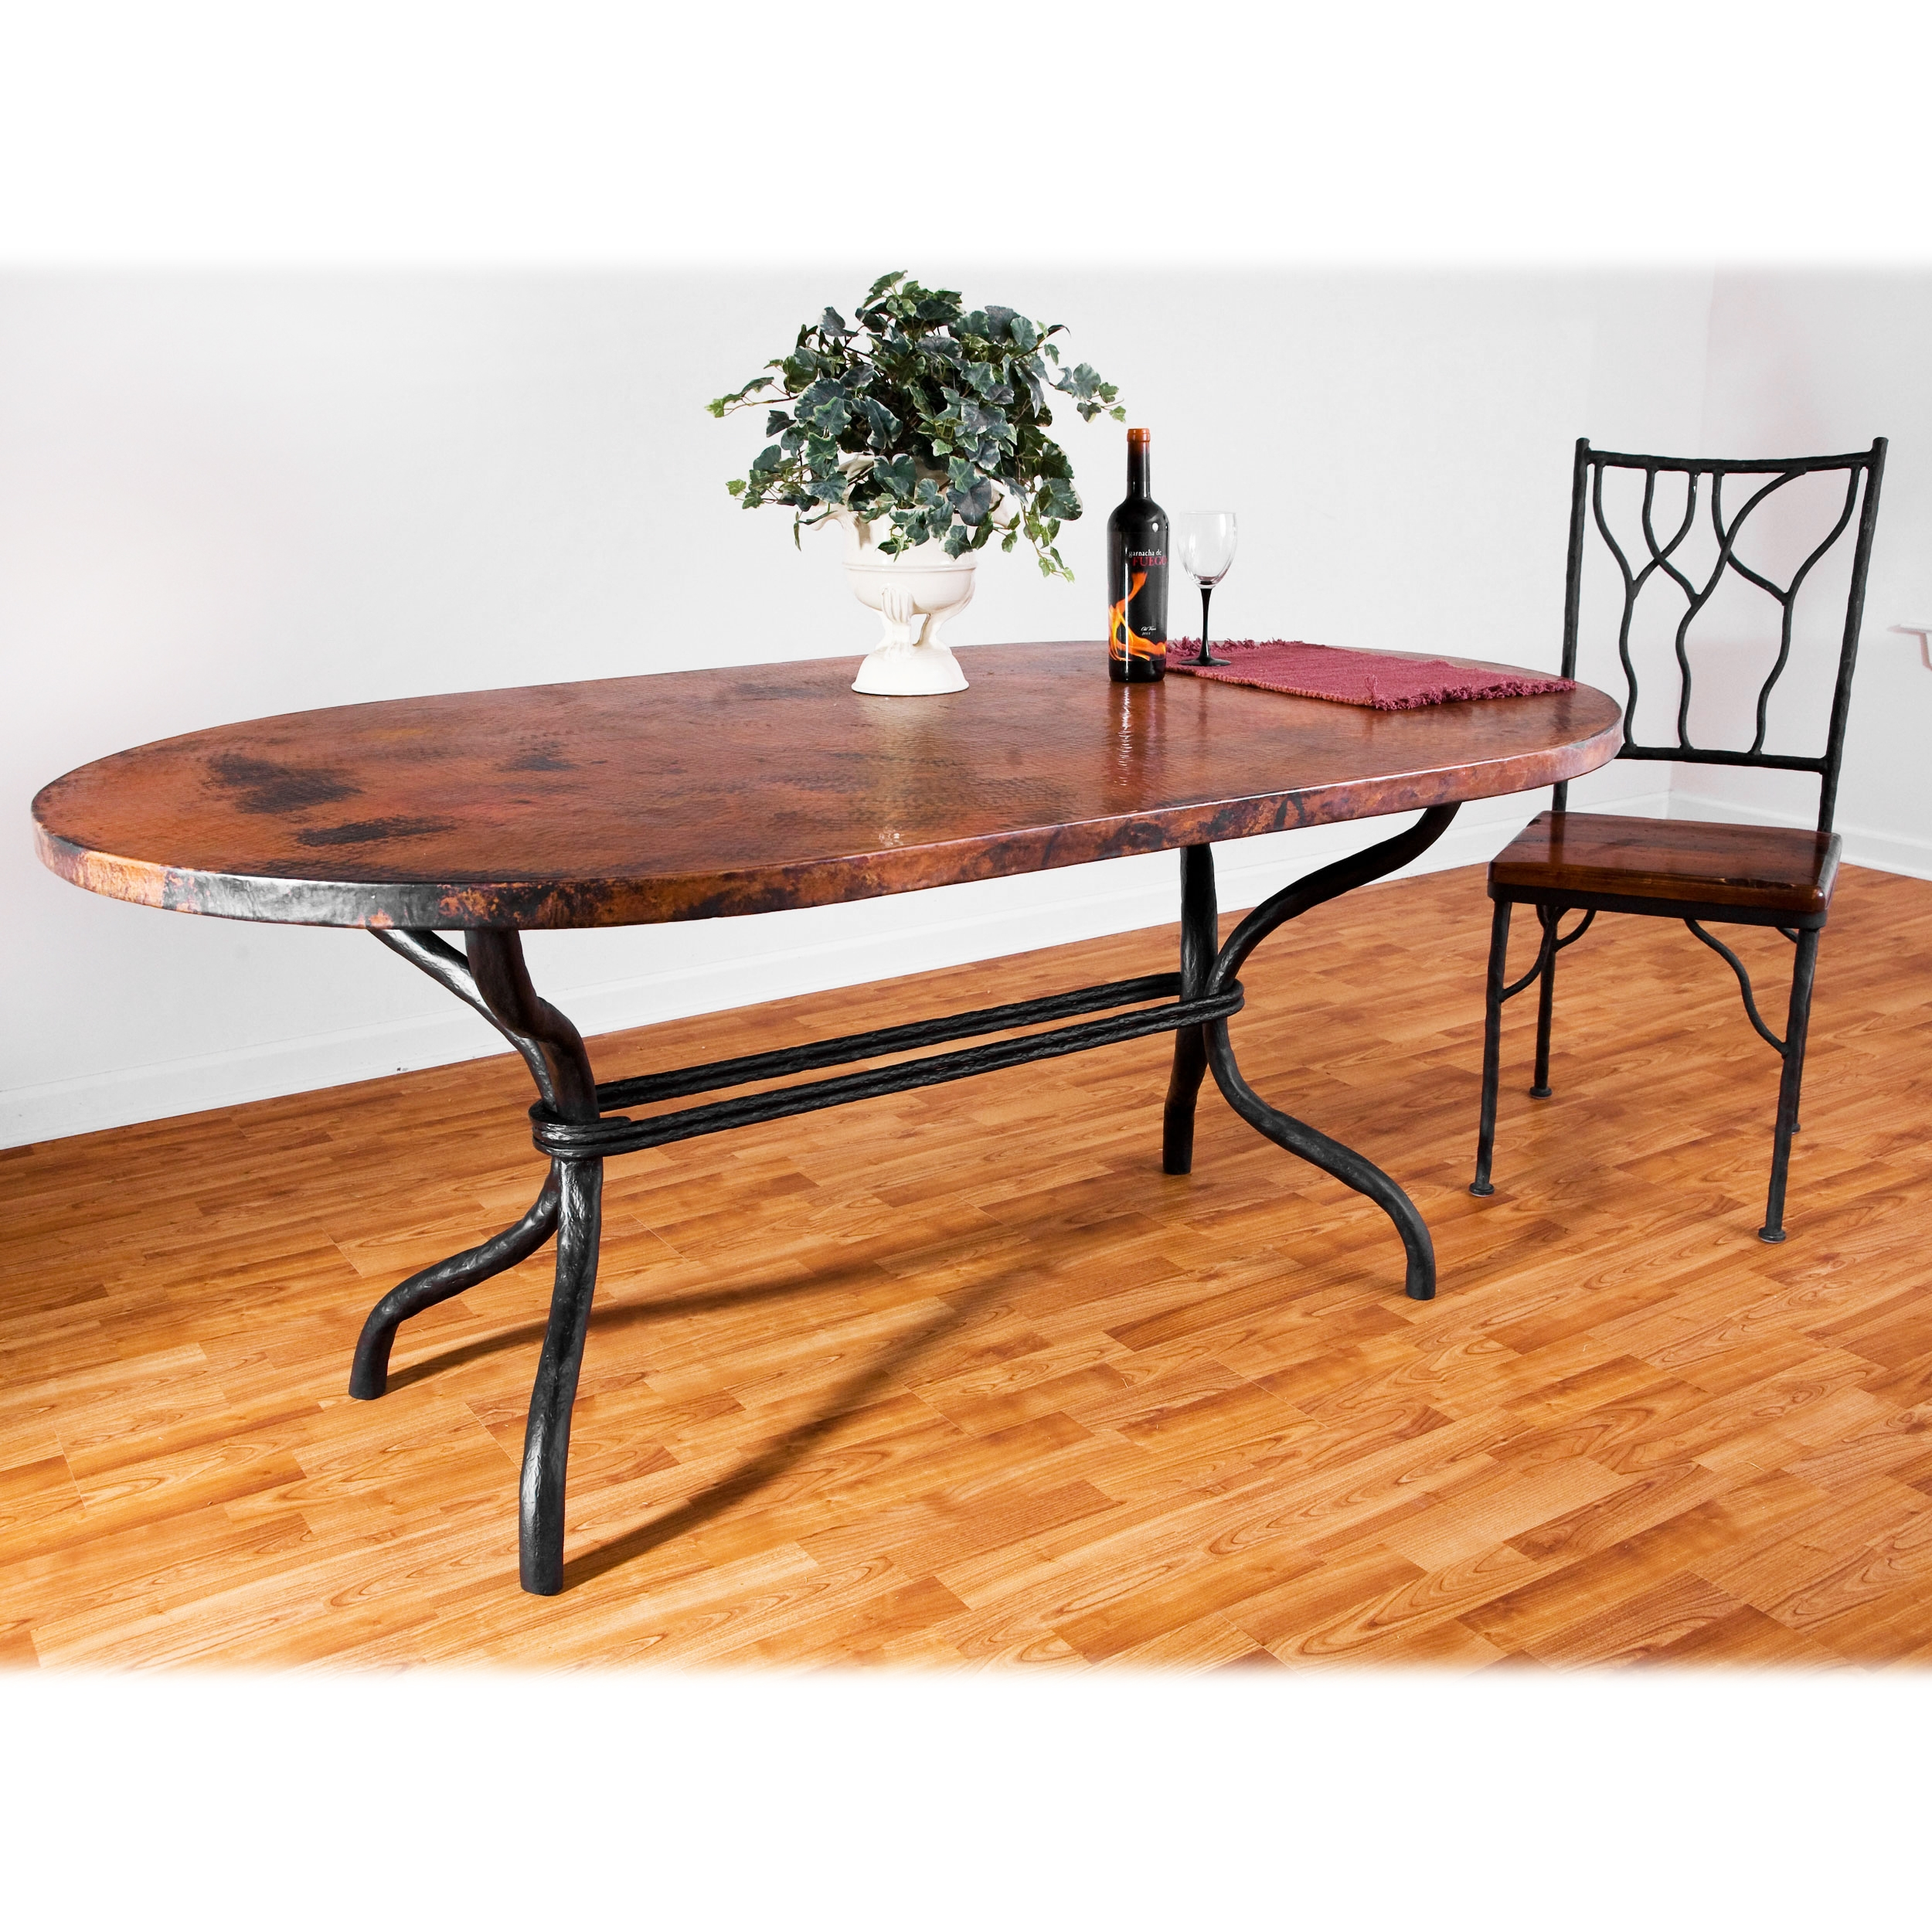 Contemporary Wrought Iron Woodland Dining Table 42in x 72in